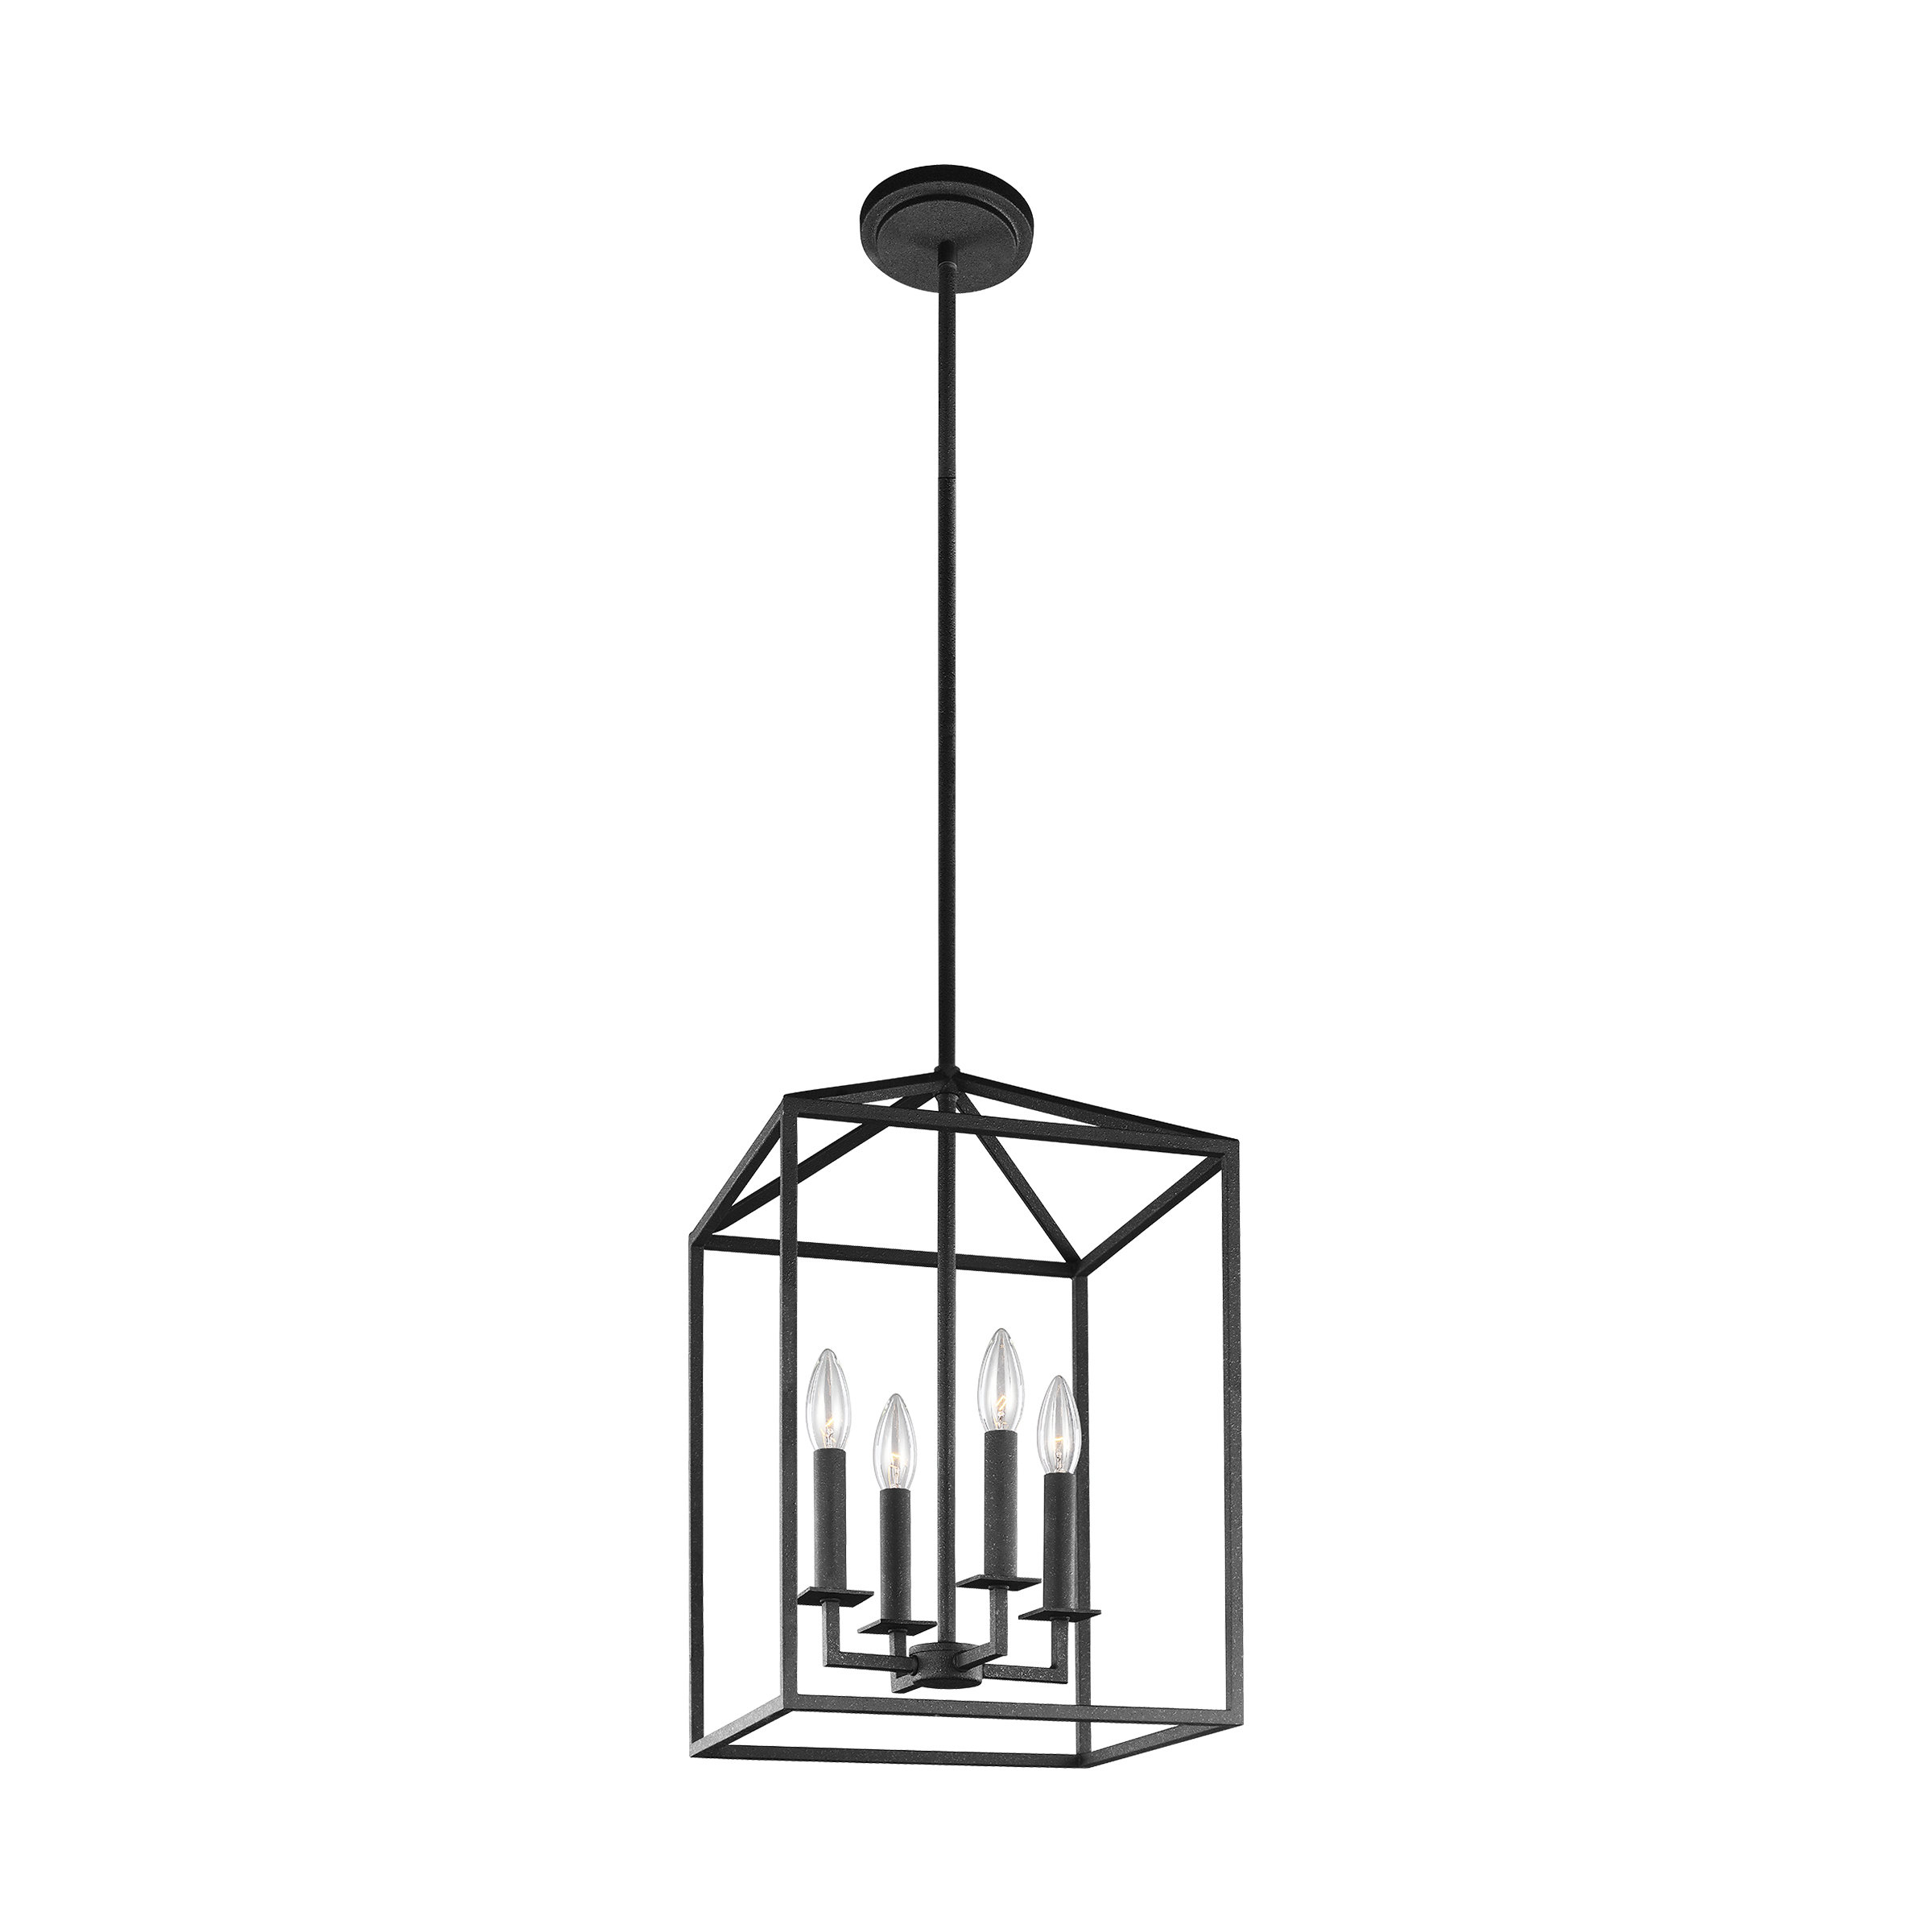 Odie 4 Light Lantern Square / Rectangle Pendant With Regard To Odie 4 Light Lantern Square Pendants (View 17 of 30)